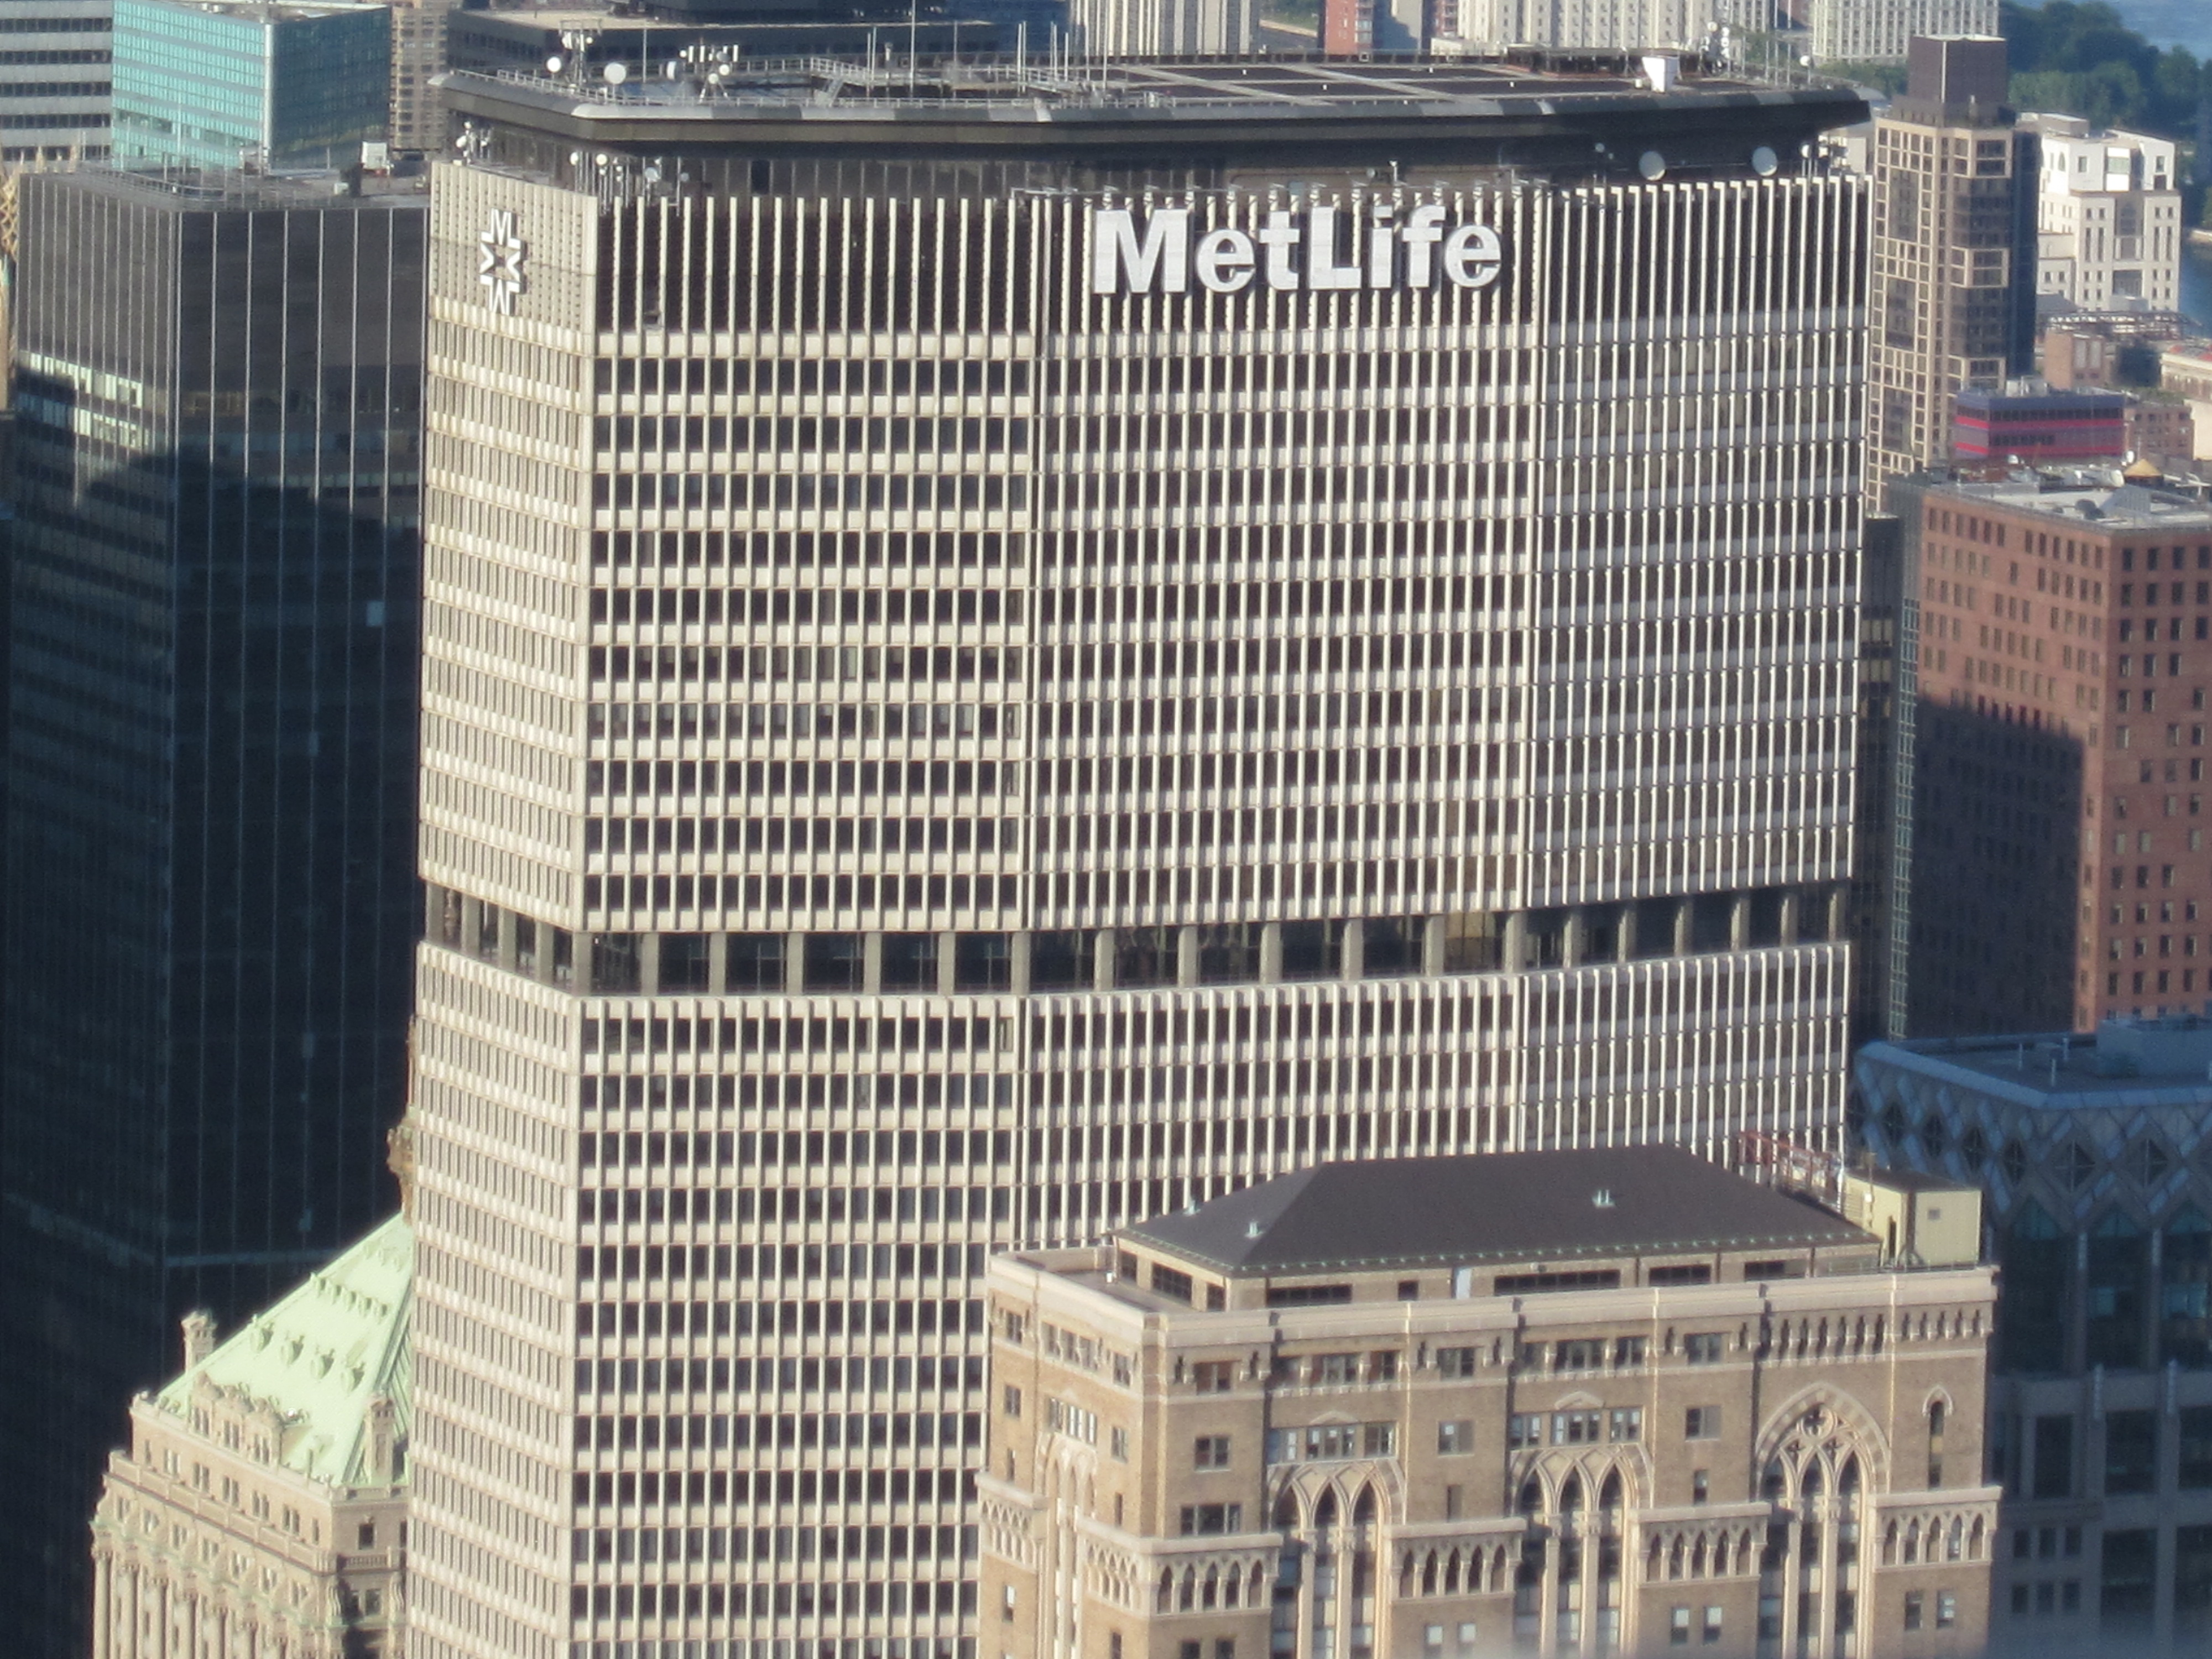 http://upload.wikimedia.org/wikipedia/commons/5/51/MetLife_from_Empire_State_Building.jpg